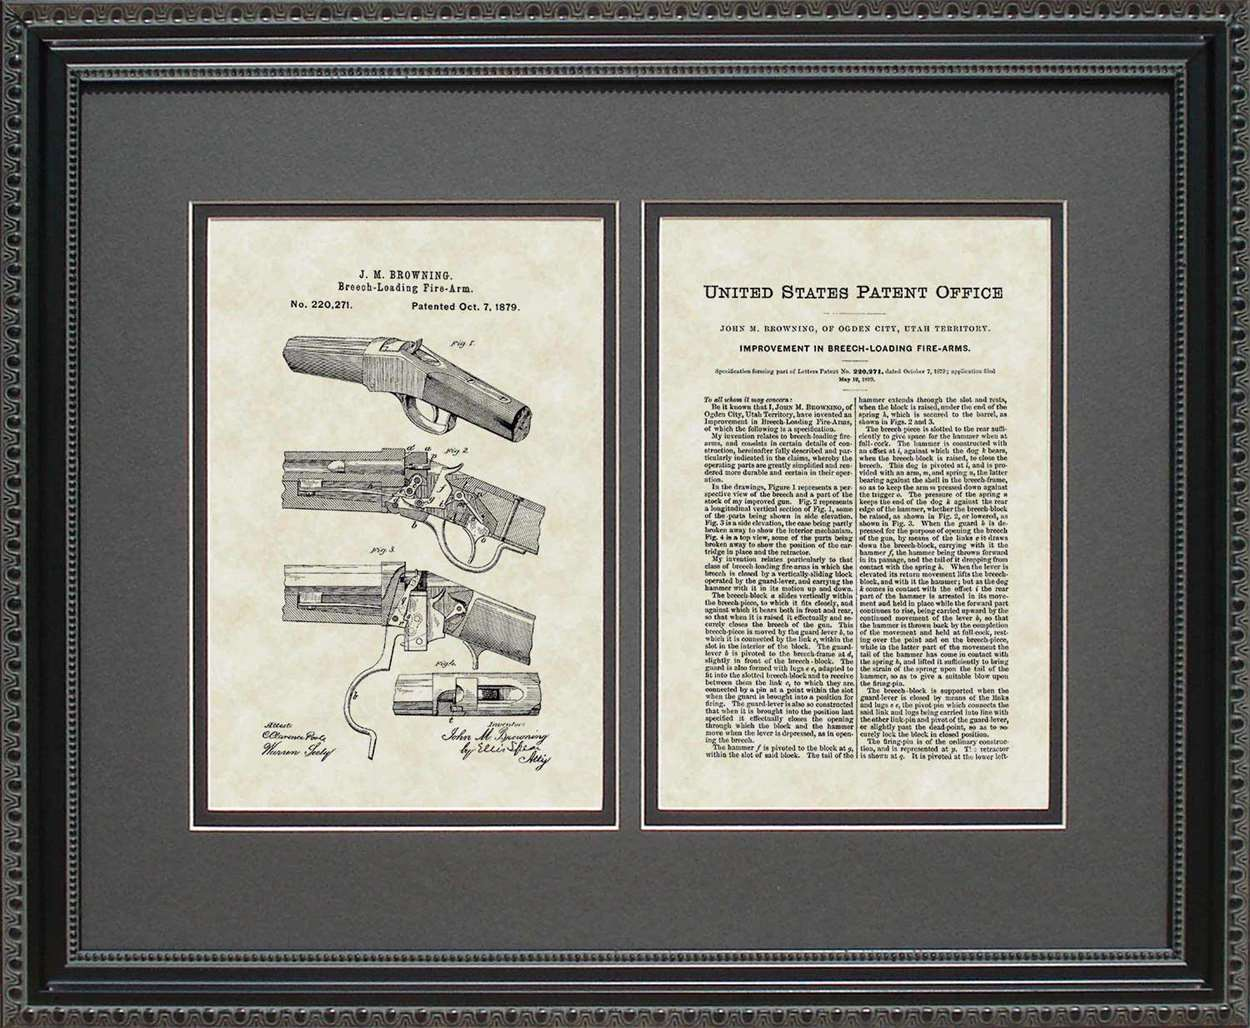 Winchester 1885 Single-Shot Rifle Patent, Art & Copy, Browning, 1879, 16x20